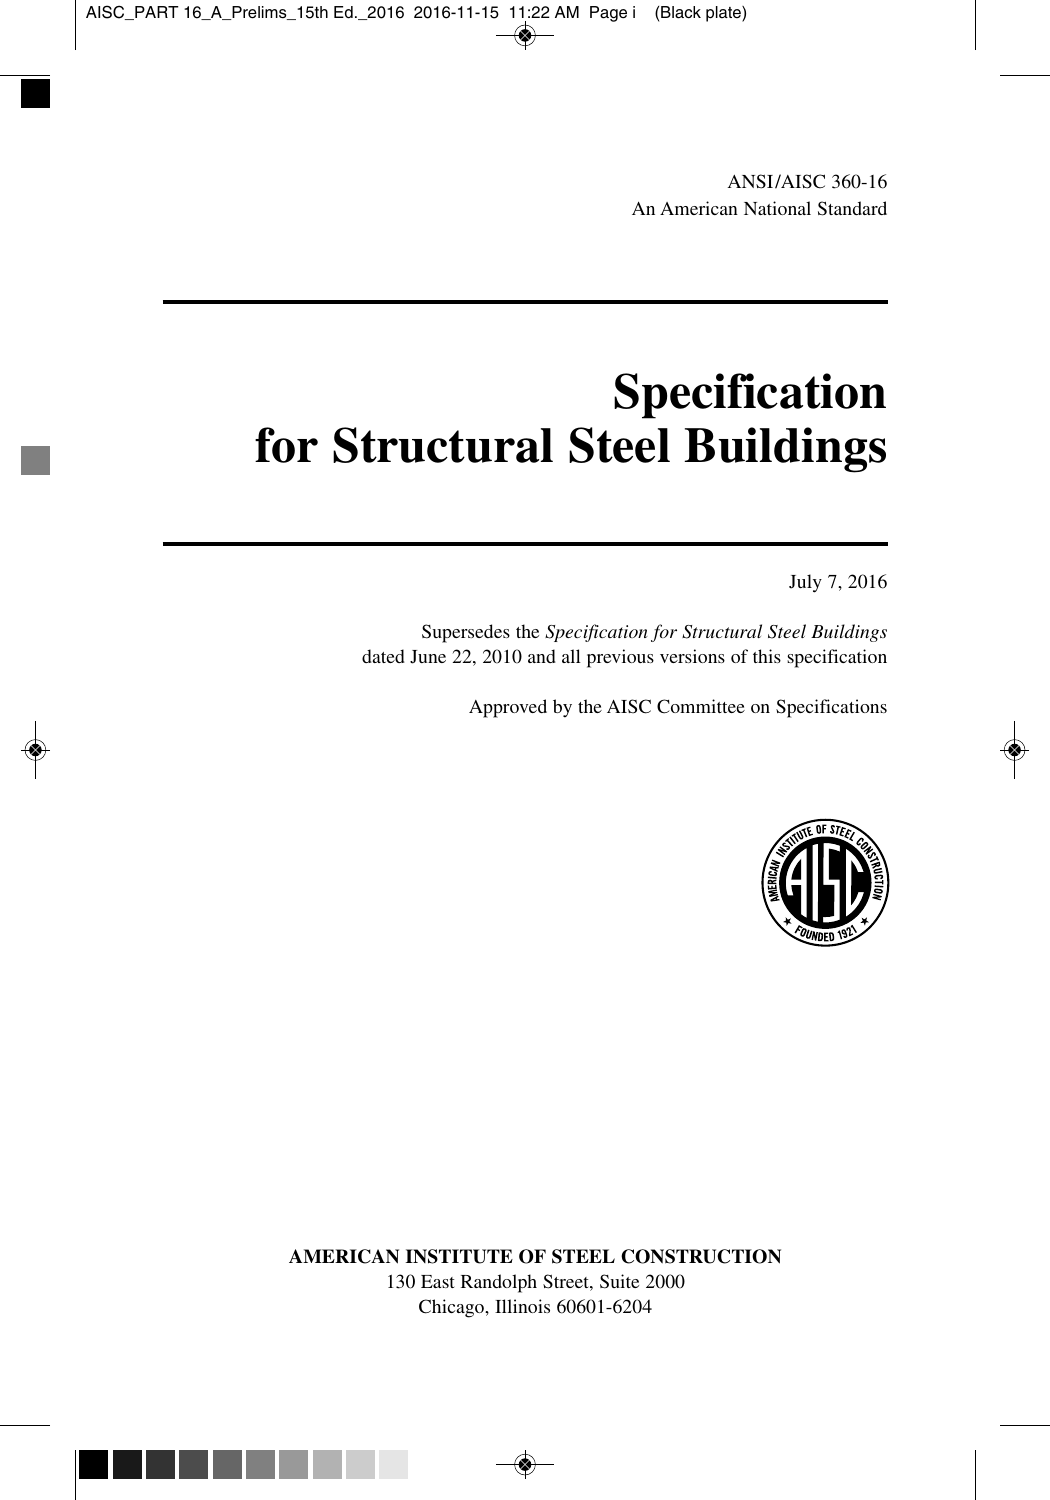 hight resolution of aisc part 16 a prelims 15th ed 2016 2016 11 15 11 22 am page i black plate ansi aisc 360 16 an american national standard specification for structural